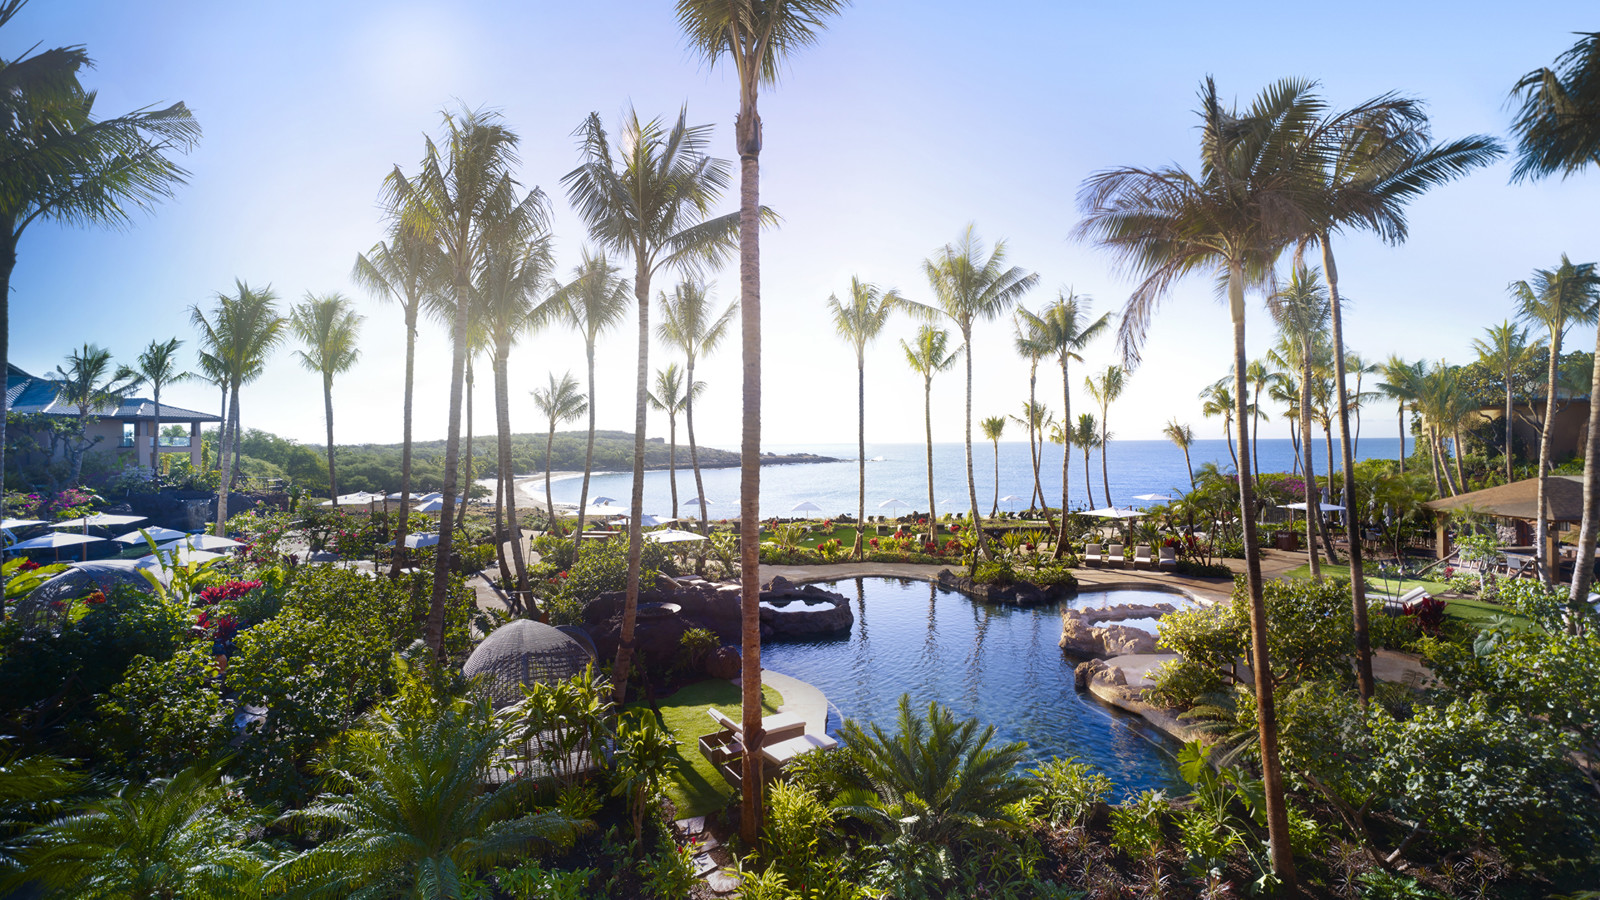 news-main-luxurious-hawaiian-resort-four-seasons-resort-lanai-earns-prestigious-award.1599495754.jpg